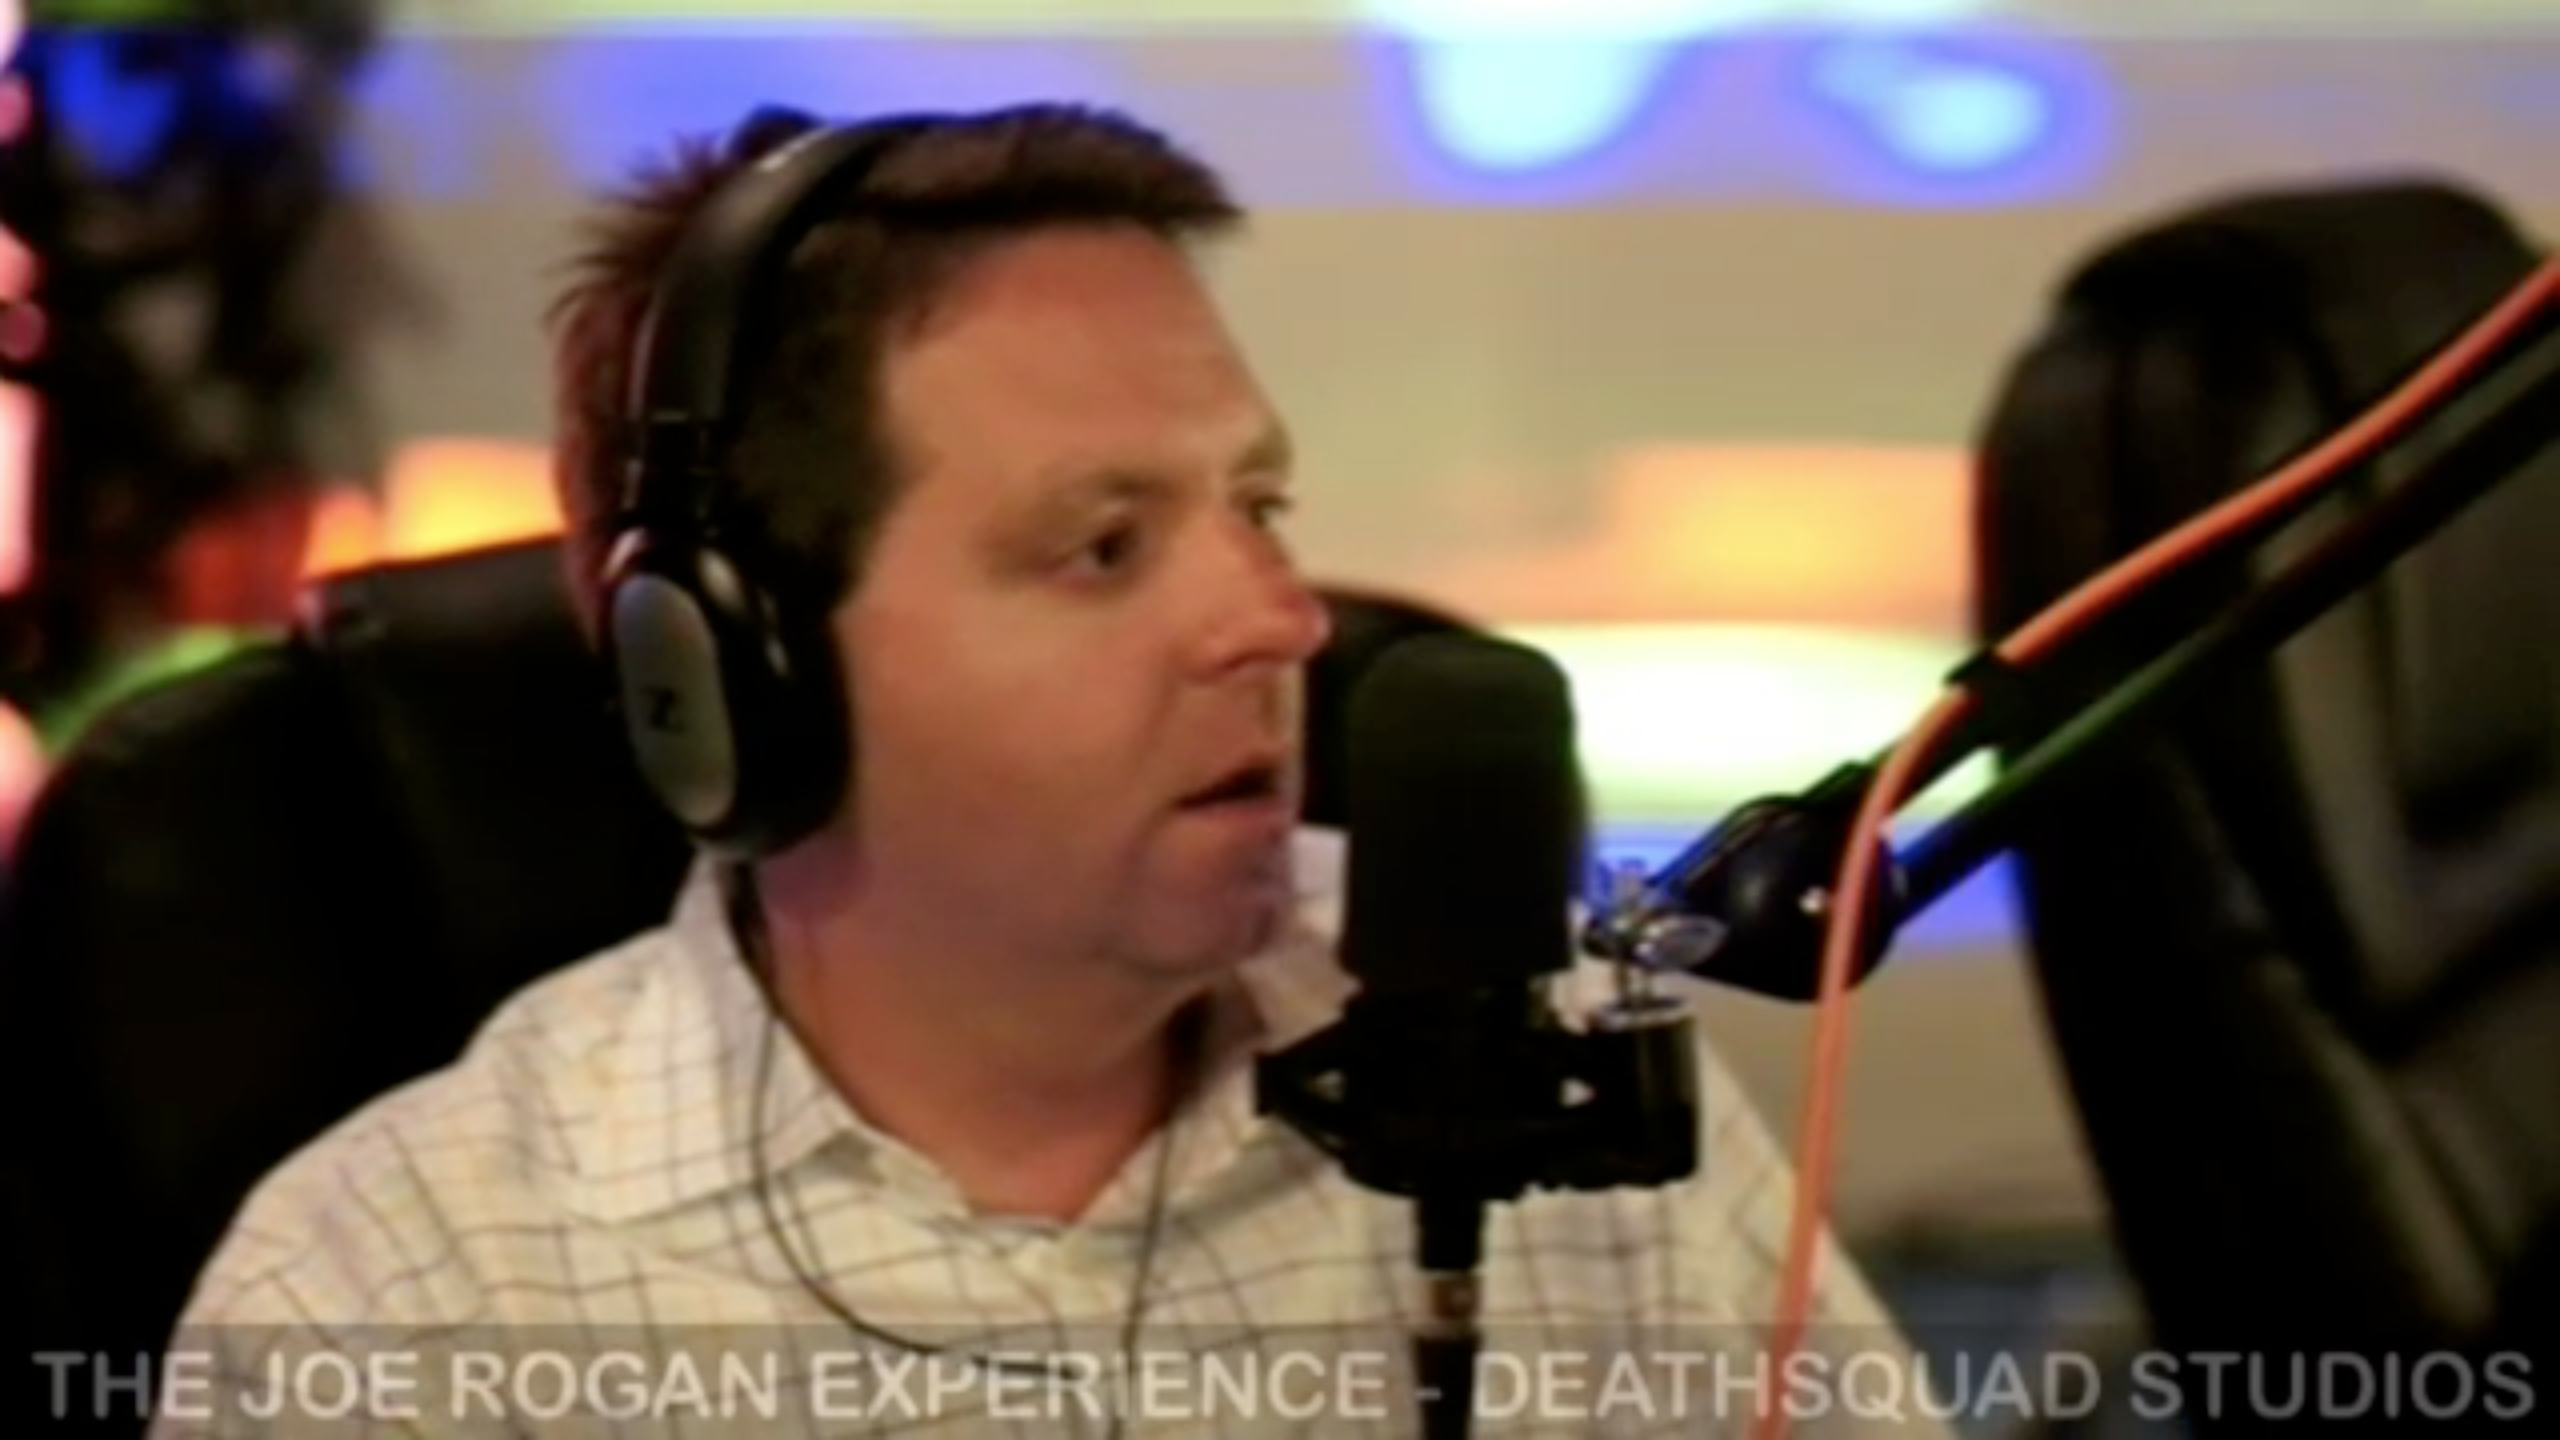 The Joe Rogan Experience #196 - Matt Paxton, Brian Redban